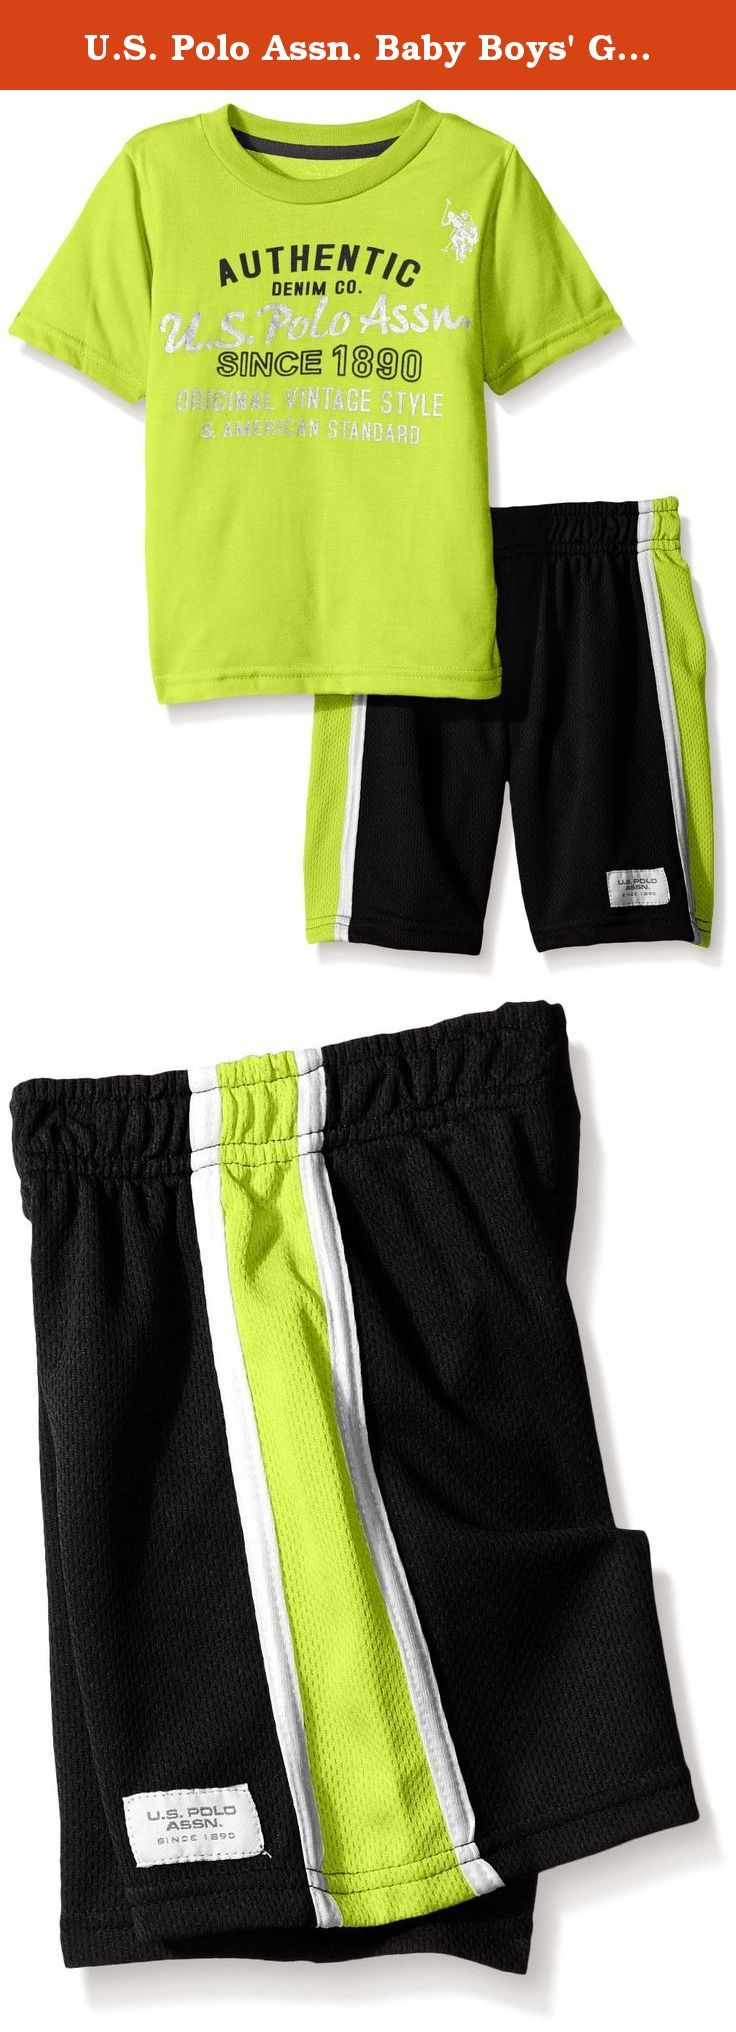 U.S. Polo Assn. Baby Boys' Graphic T-Shirt and Mesh Sport Short, Lime Lorry, 24 Months. Graphic logo t-shirt and closed hole mesh athletic short.